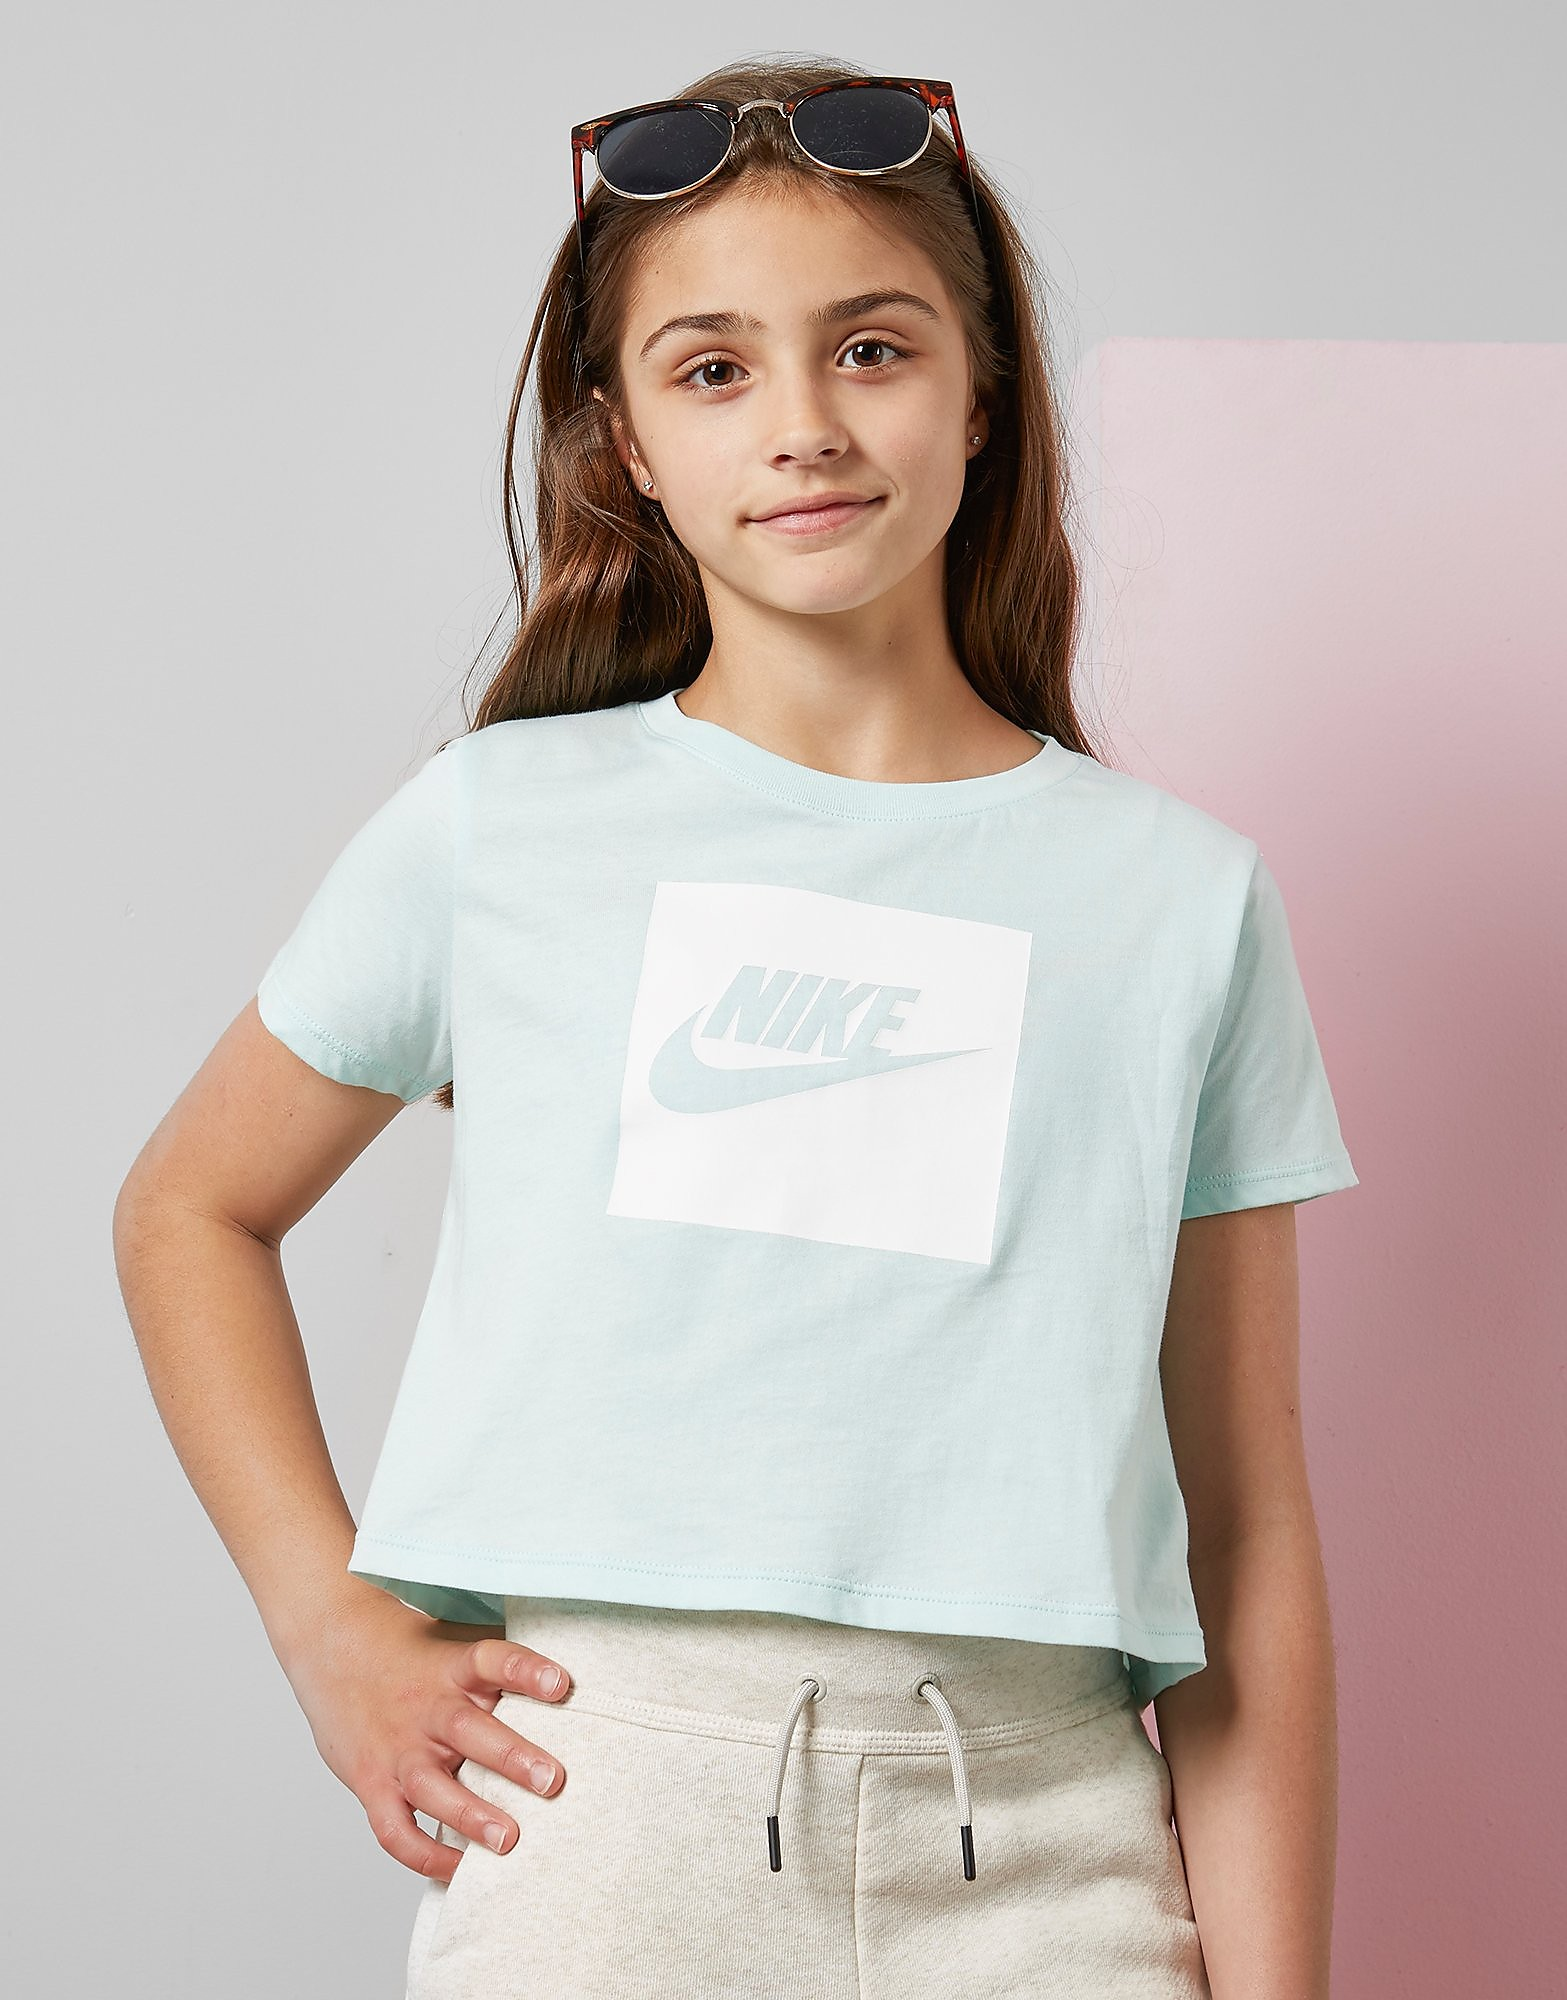 Nike Girls' Crop Box T-Shirt Junior - Groen - Kind